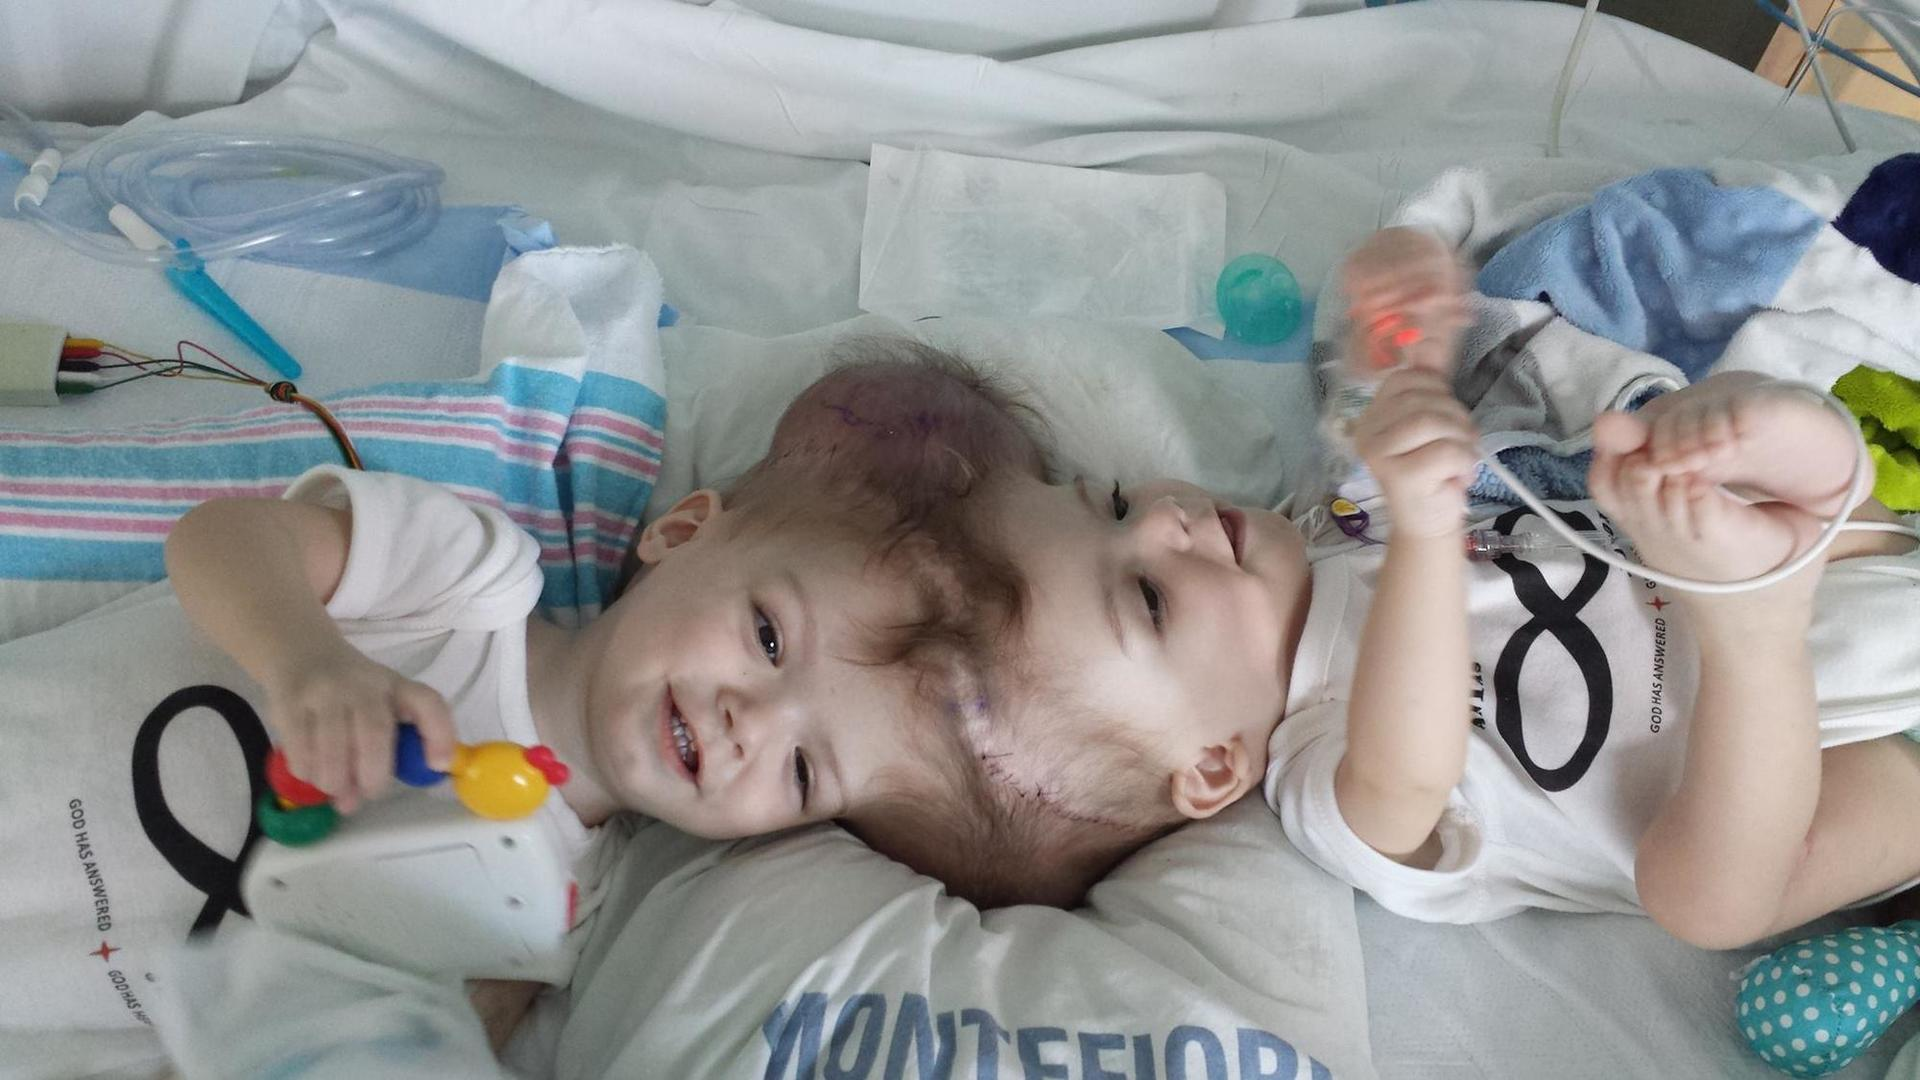 Twins Born With Conjoined Heads Finally Got Separated After 27 Hours Of Operation